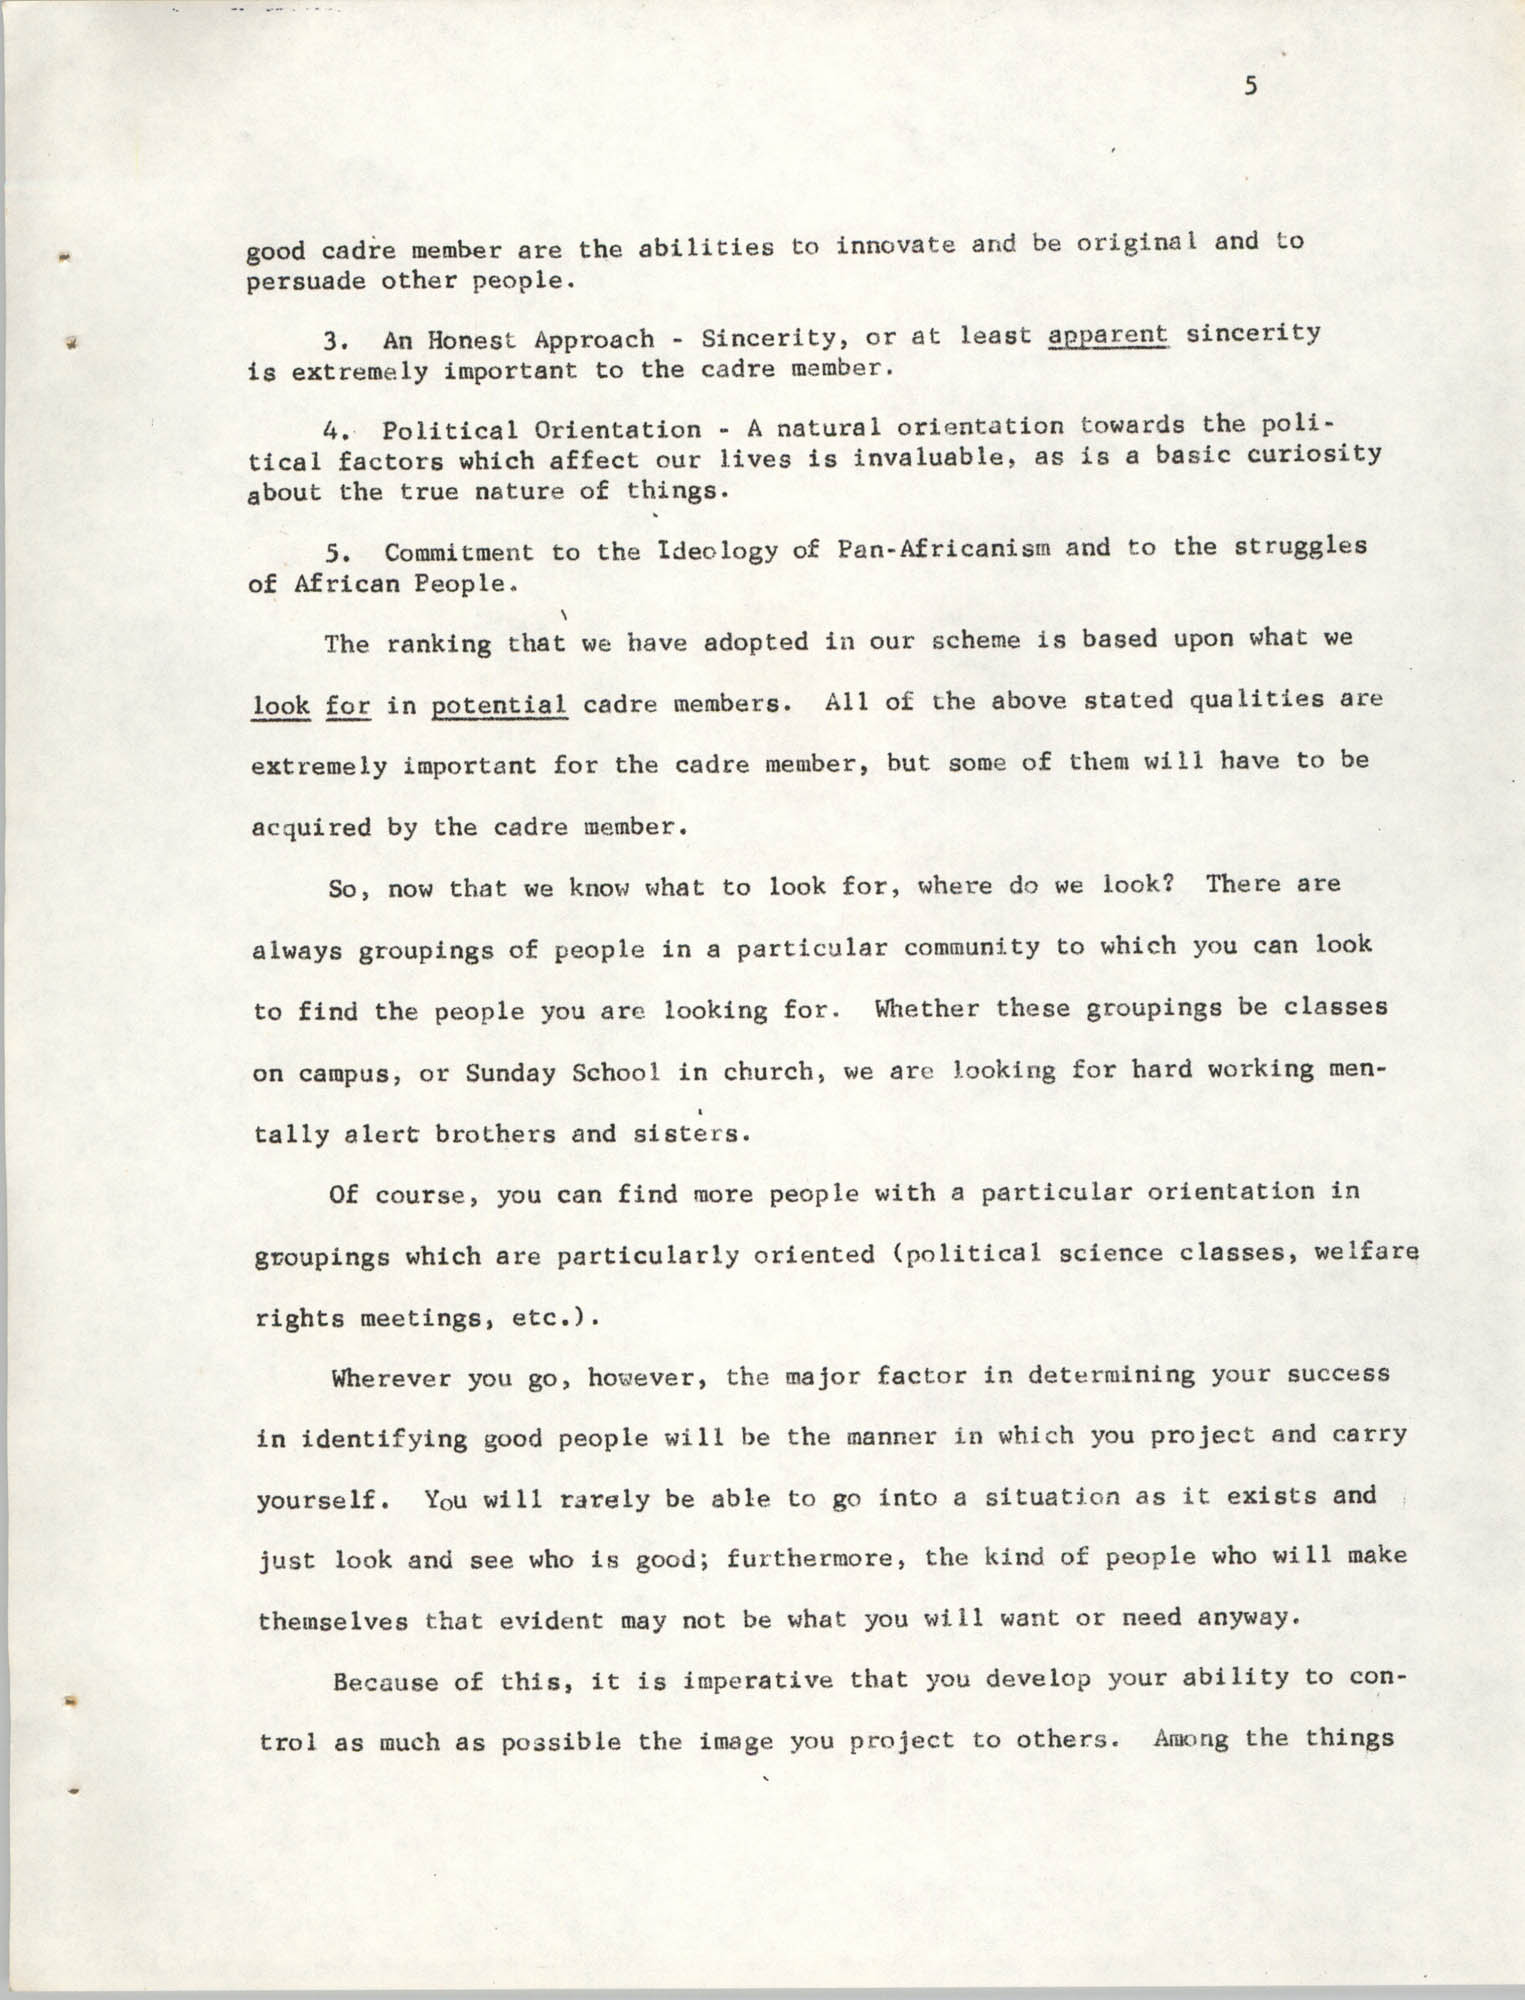 Developing Political Cadres, Page 5